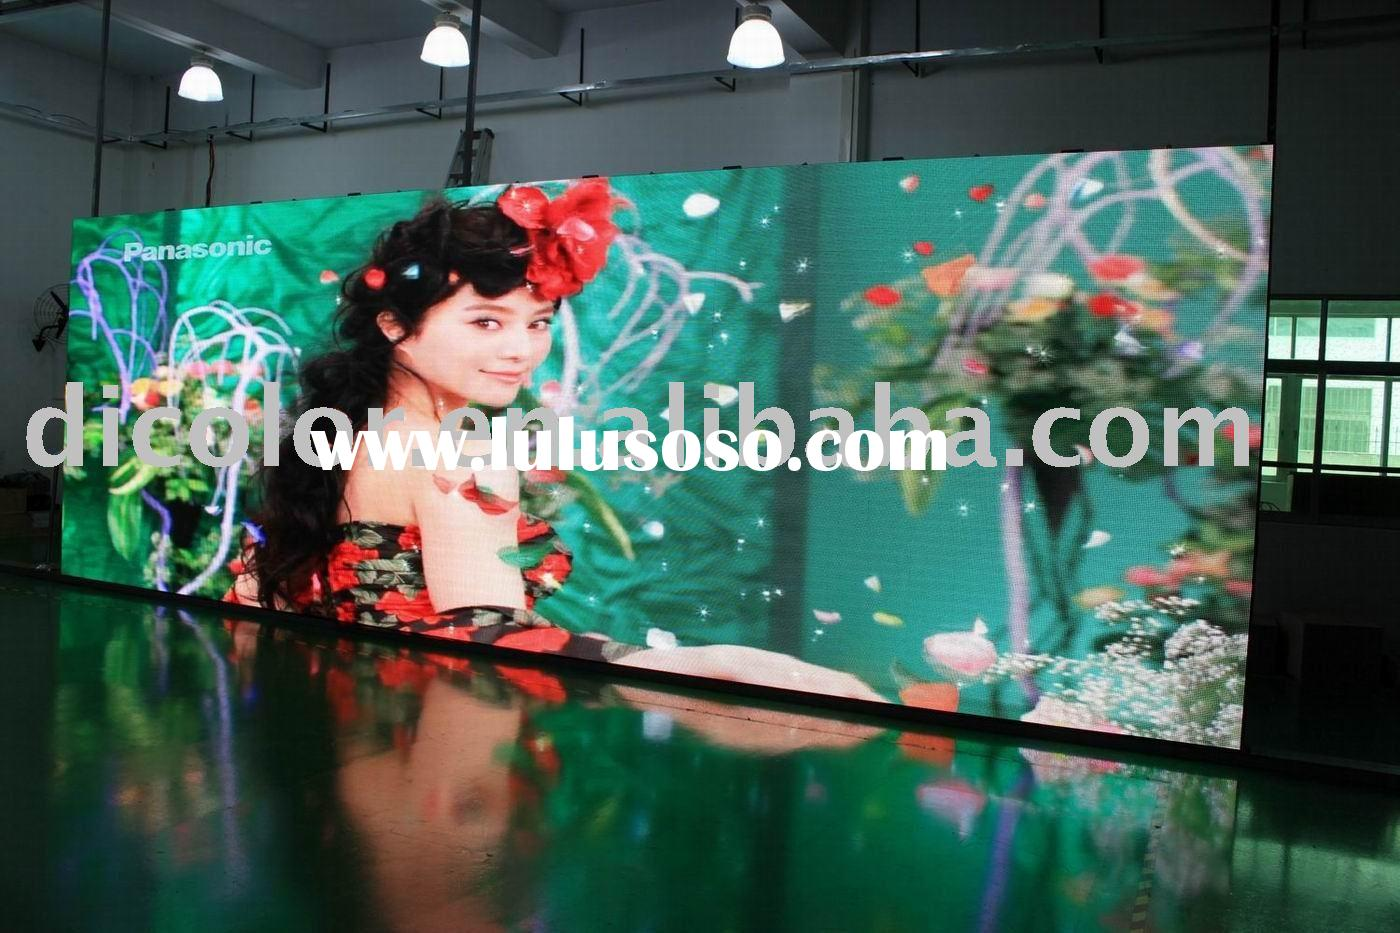 P7.62 Low power consumption indoor led panel board with 3G, 3D Technology